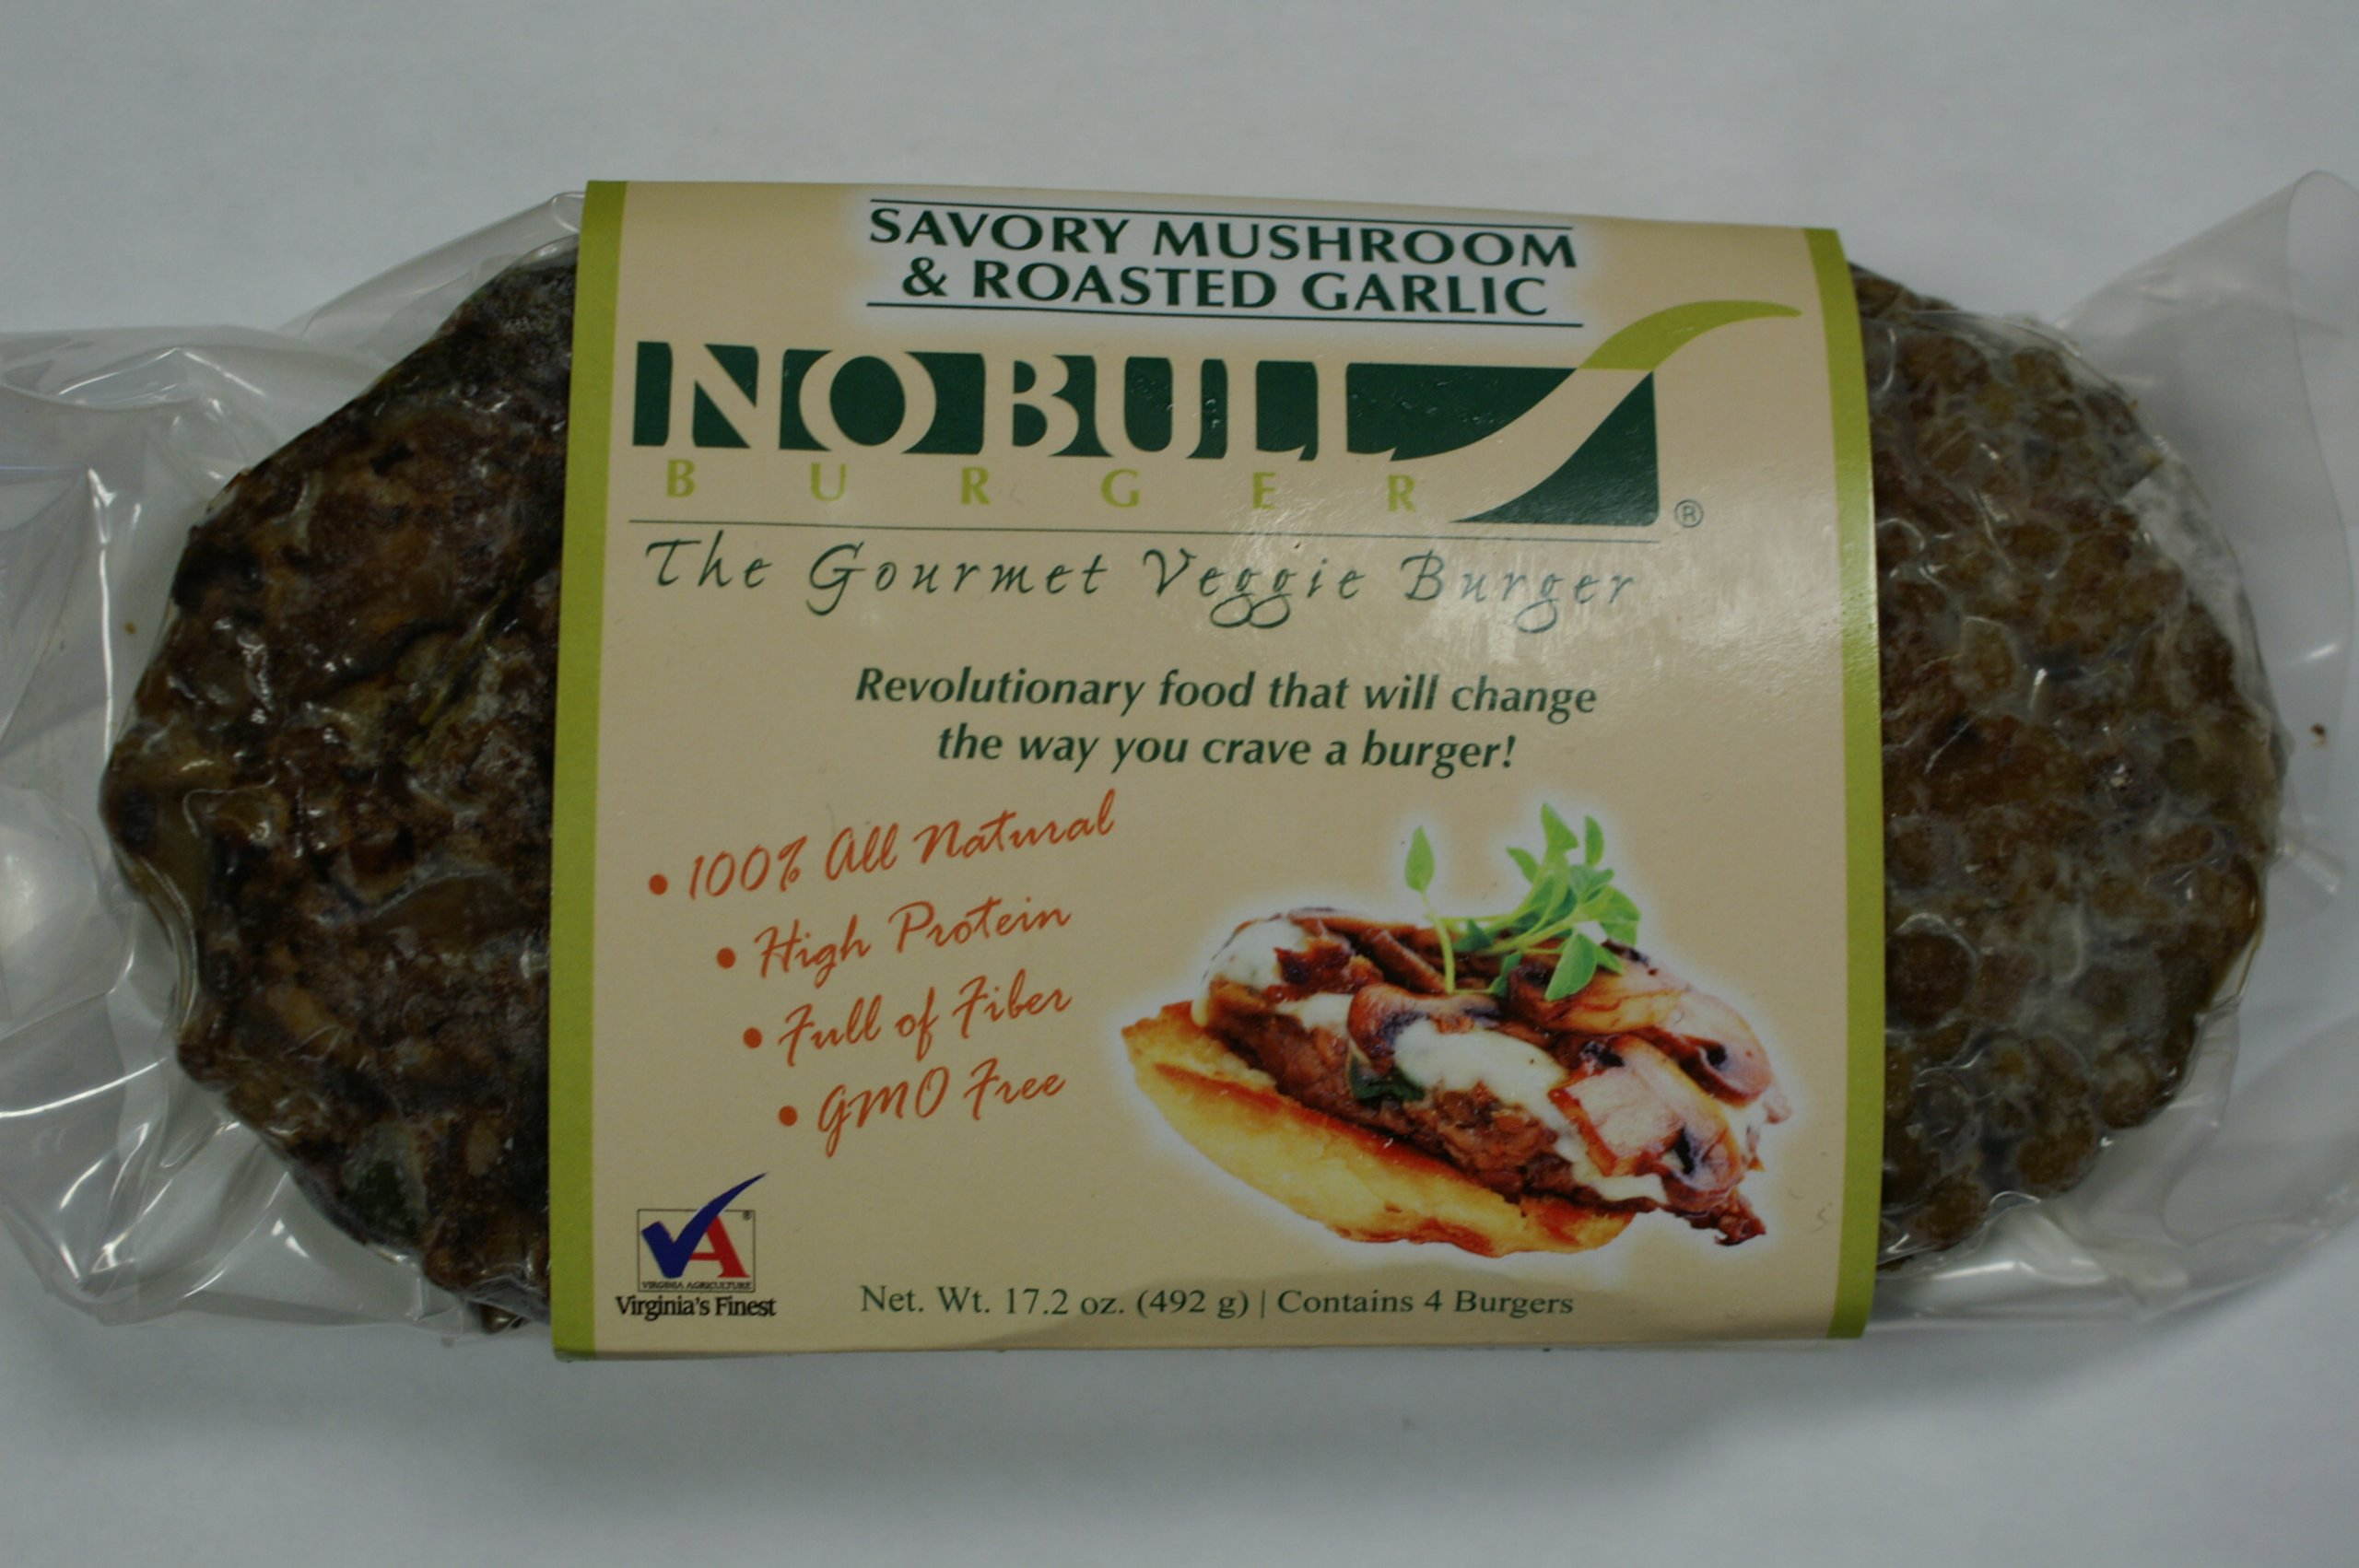 No Bull Gourmet Veggie Burger Savory Mushroom & Roasted Garlic (24 Cooked & Shipped Frozen Burgers - 12 - 2 packs - 1/4 pound per burger - All Natural & Organic -GMO Free) Simply Heat & Serve